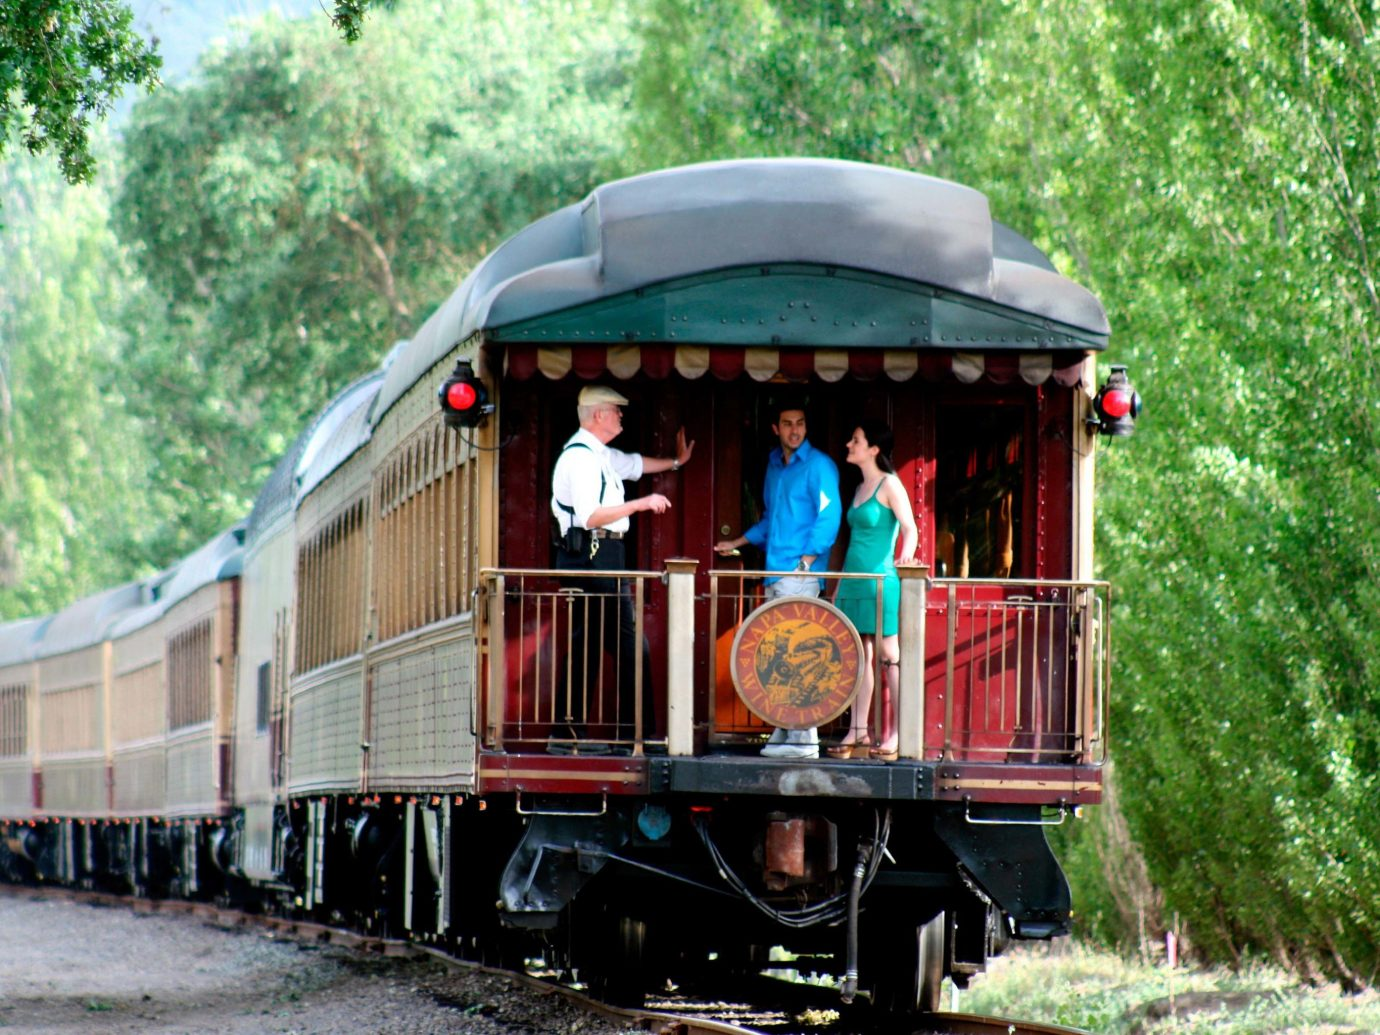 Romance Trip Ideas tree outdoor vehicle track land vehicle transport train rolling stock locomotive rail transport railroad car passenger car traveling railroad